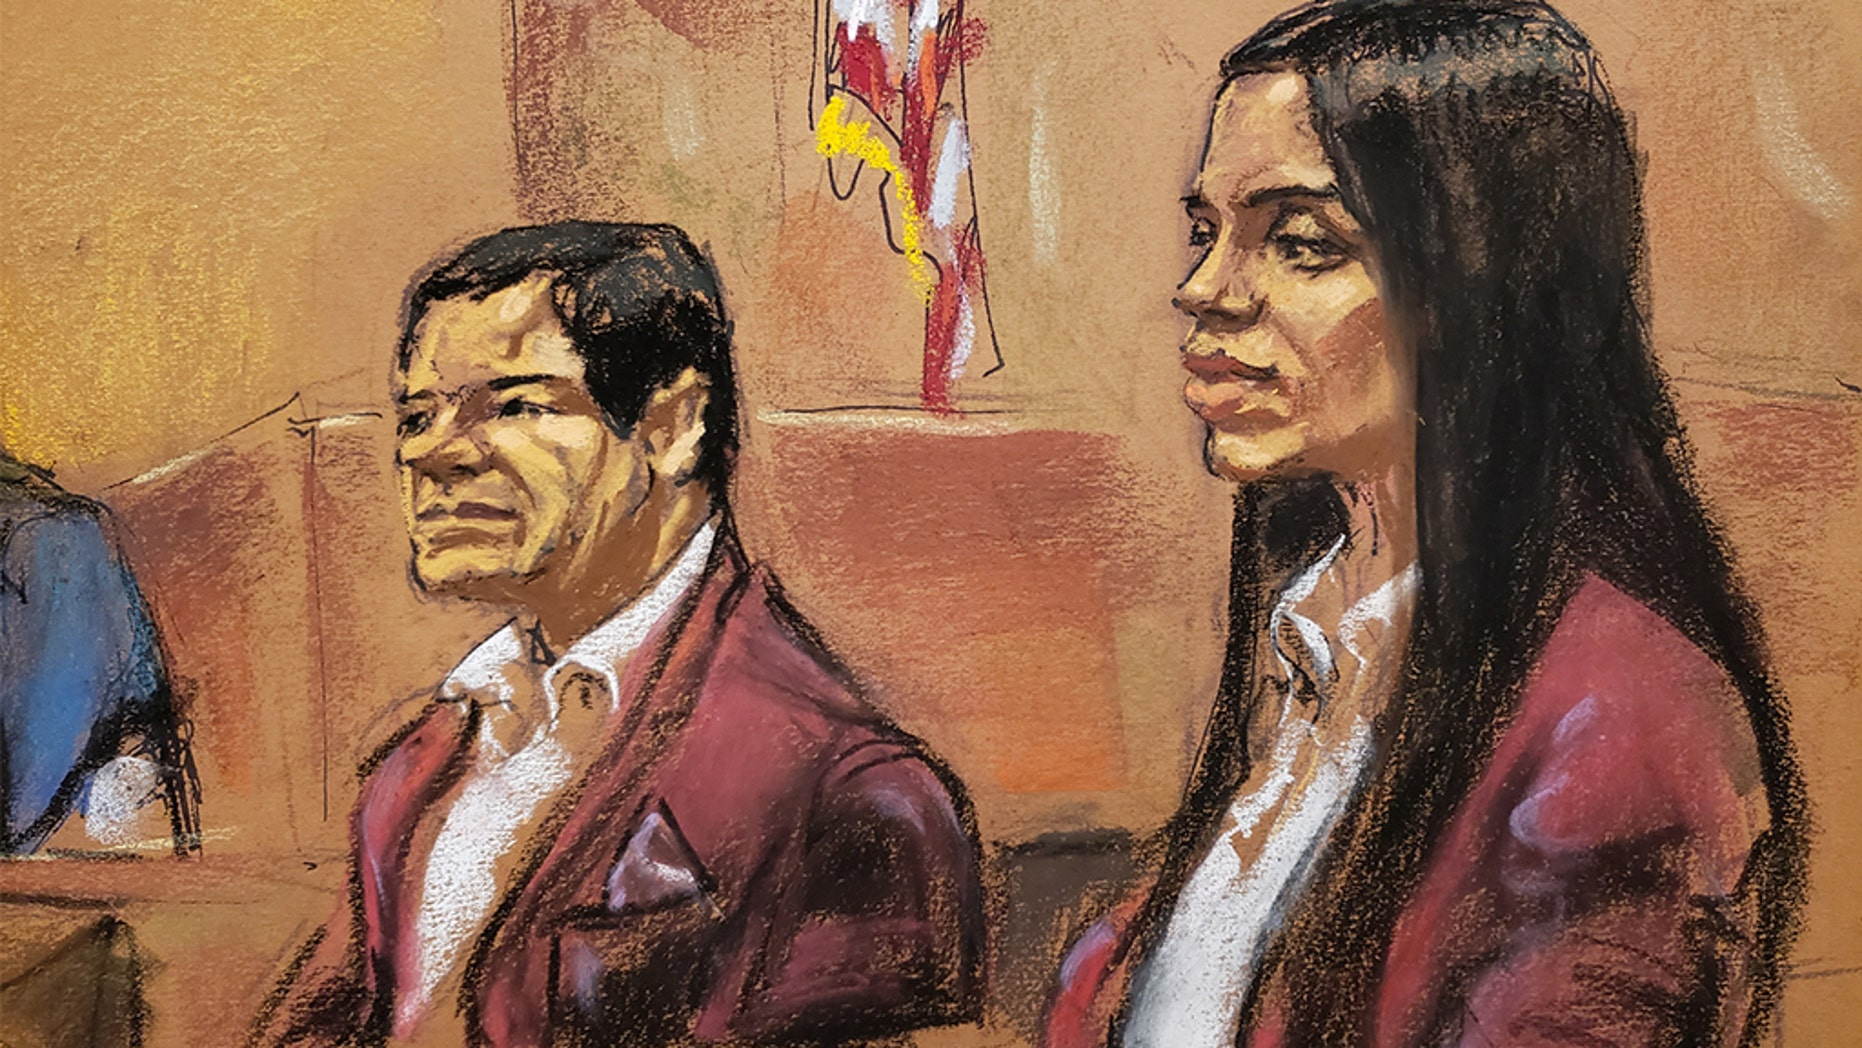 """Joaquin """"El Chapo"""" Guzman and his wife, Emma Coronel, wore matching burgundy-colored velvet jackets in court on Tuesday."""